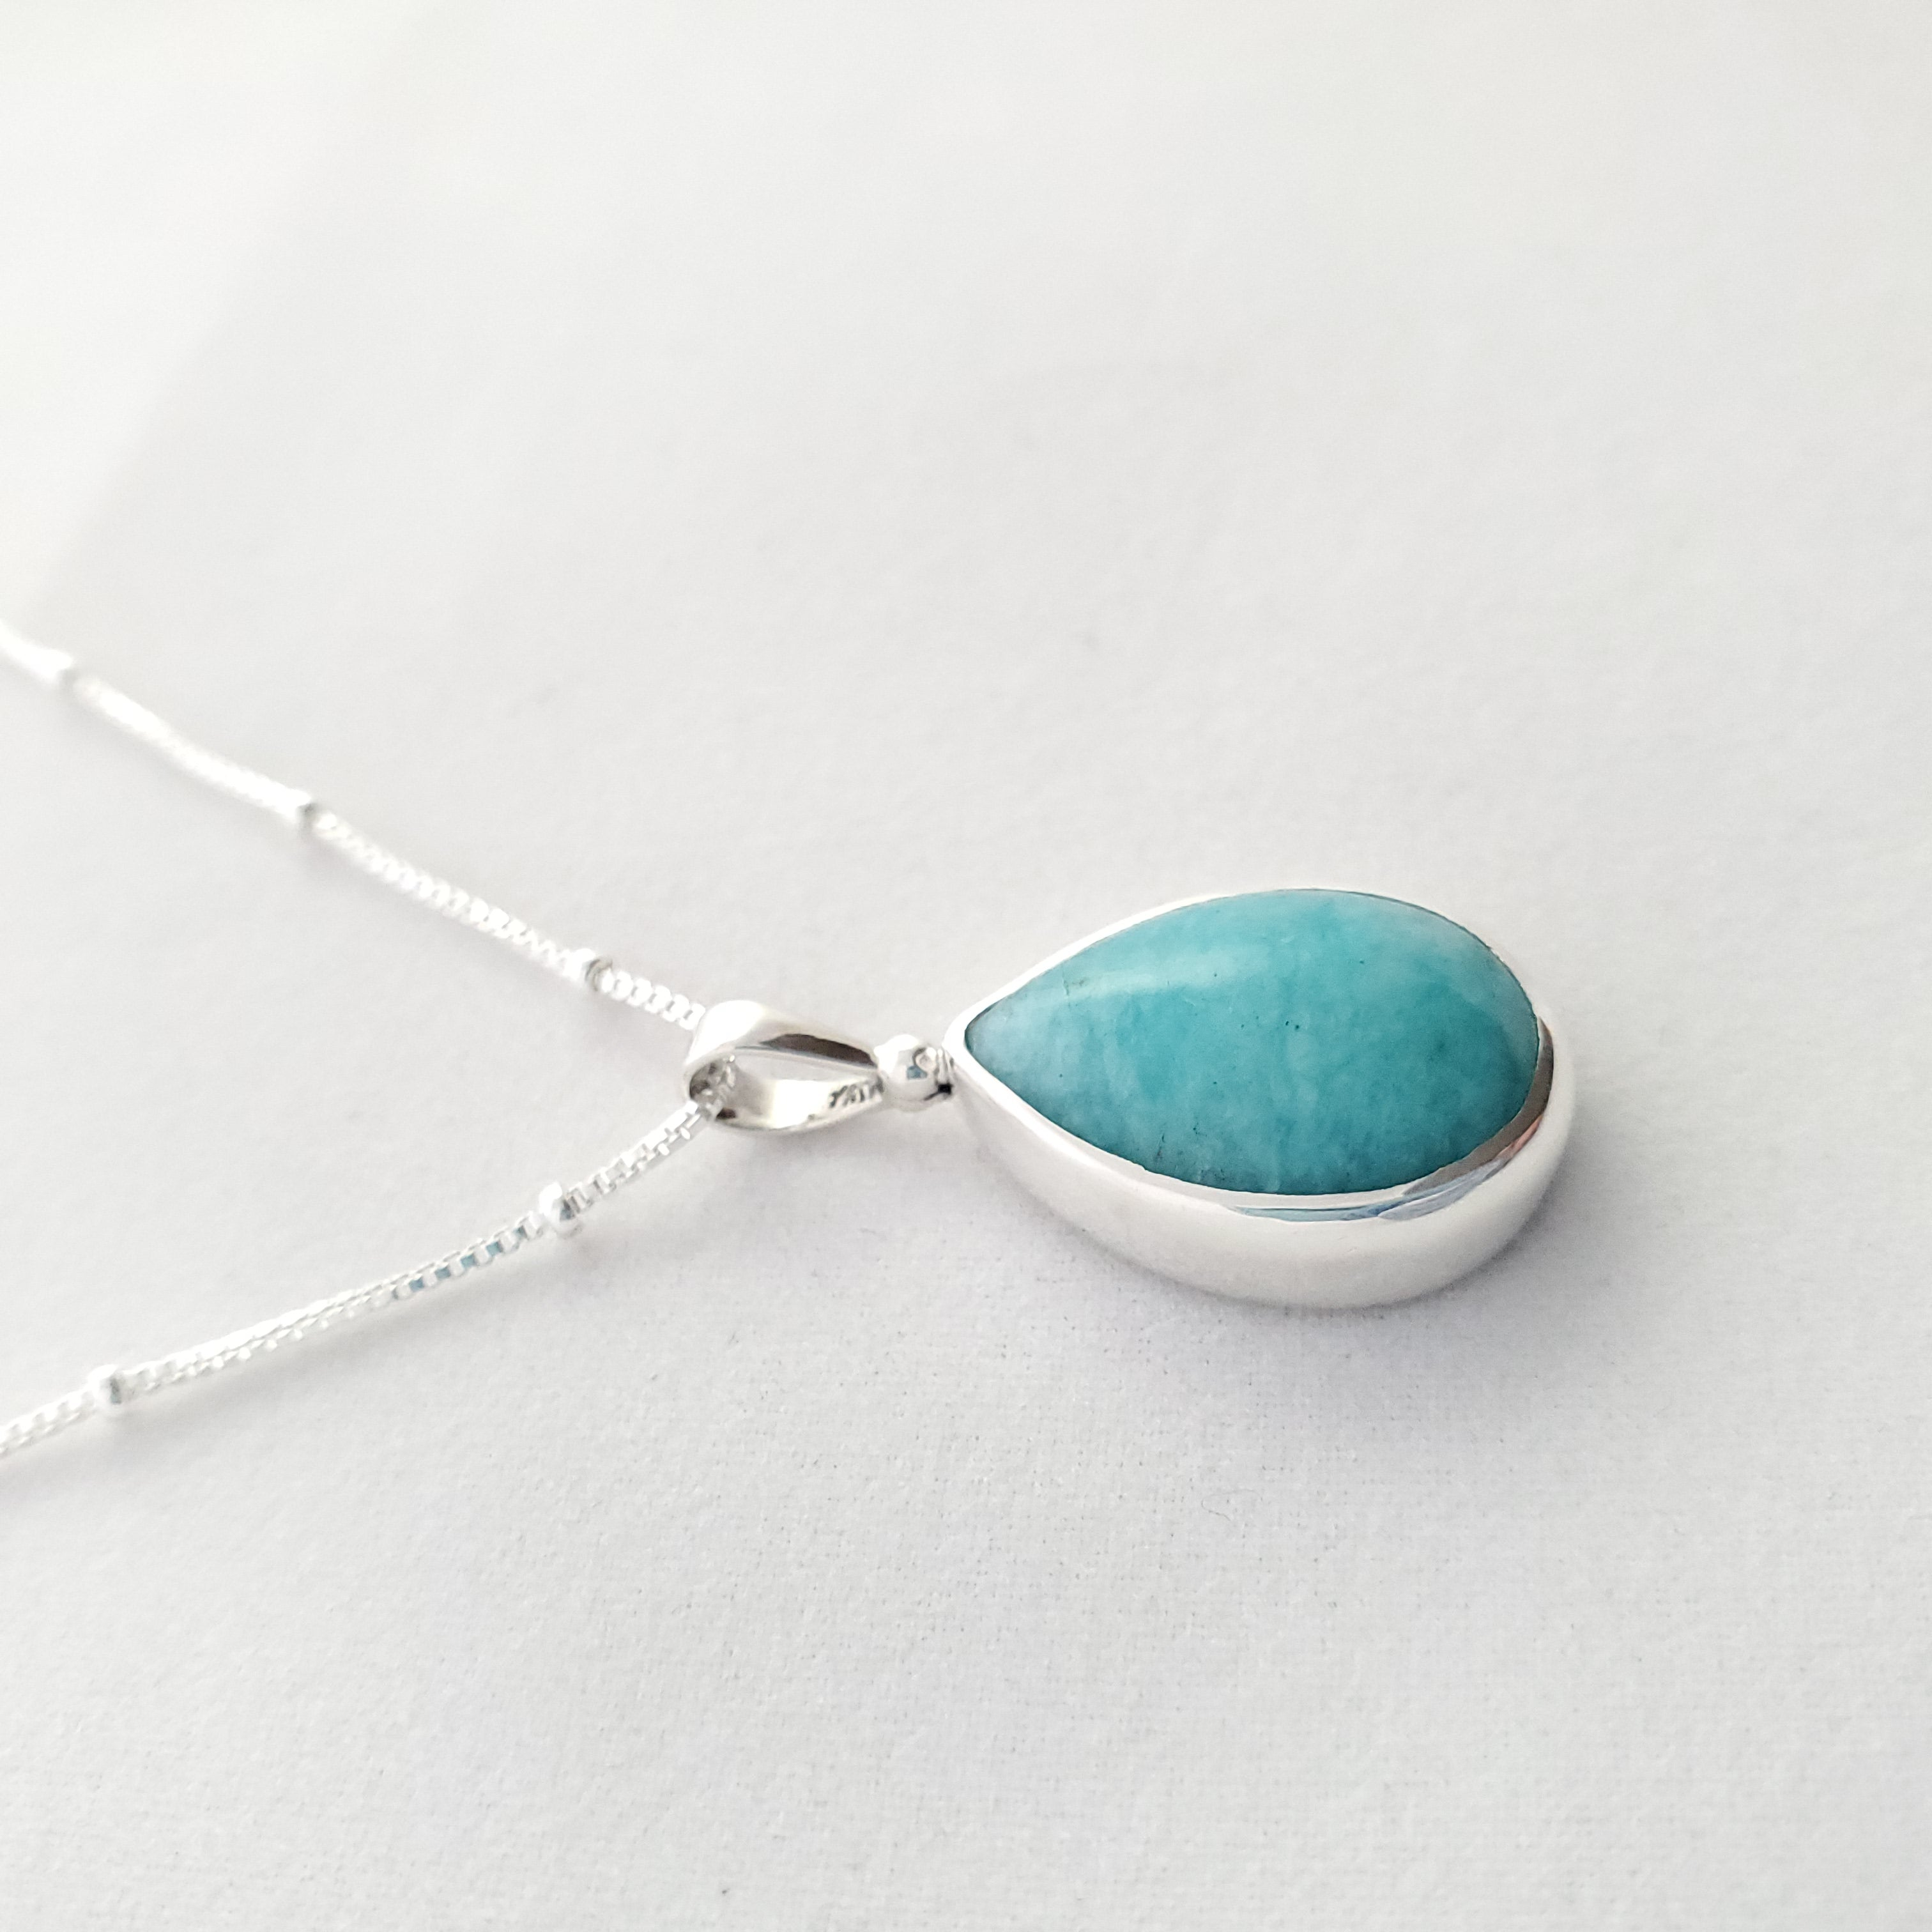 Teardrop amazonite necklace shown from the side